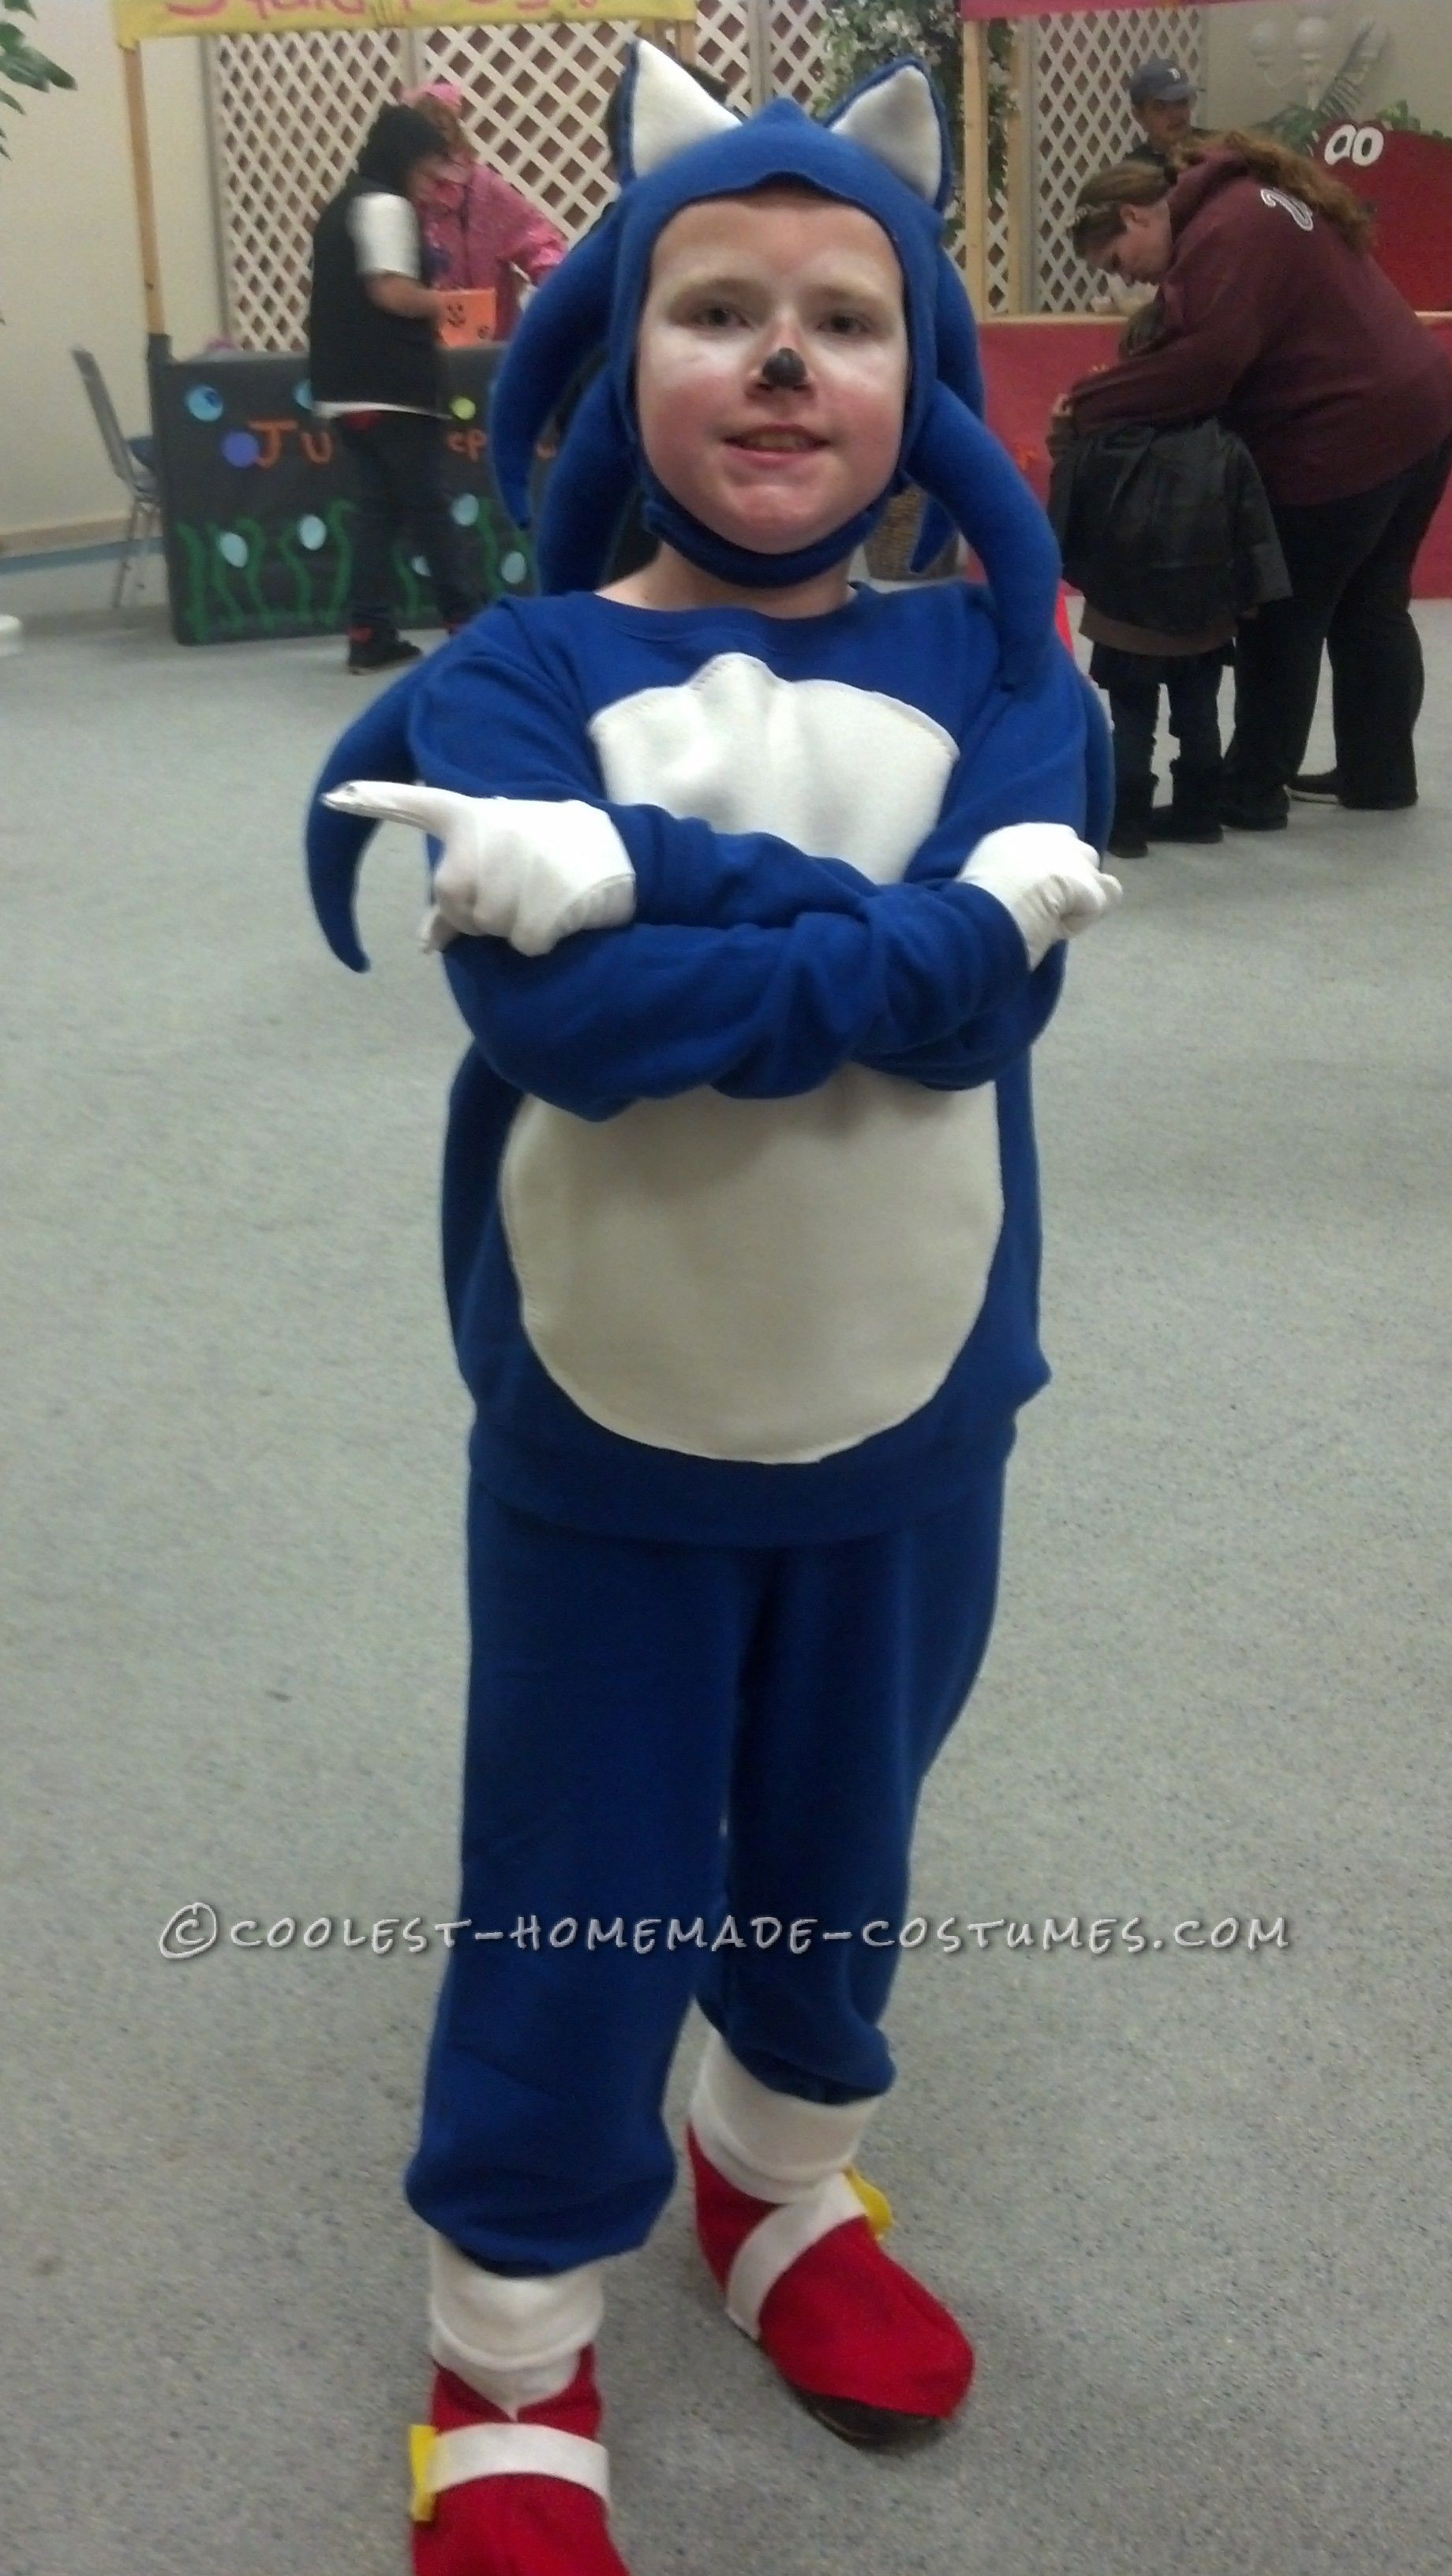 Best ideas about Cool DIY Costumes . Save or Pin Cool Sonic the Hedgehog DIY Halloween Costume Now.